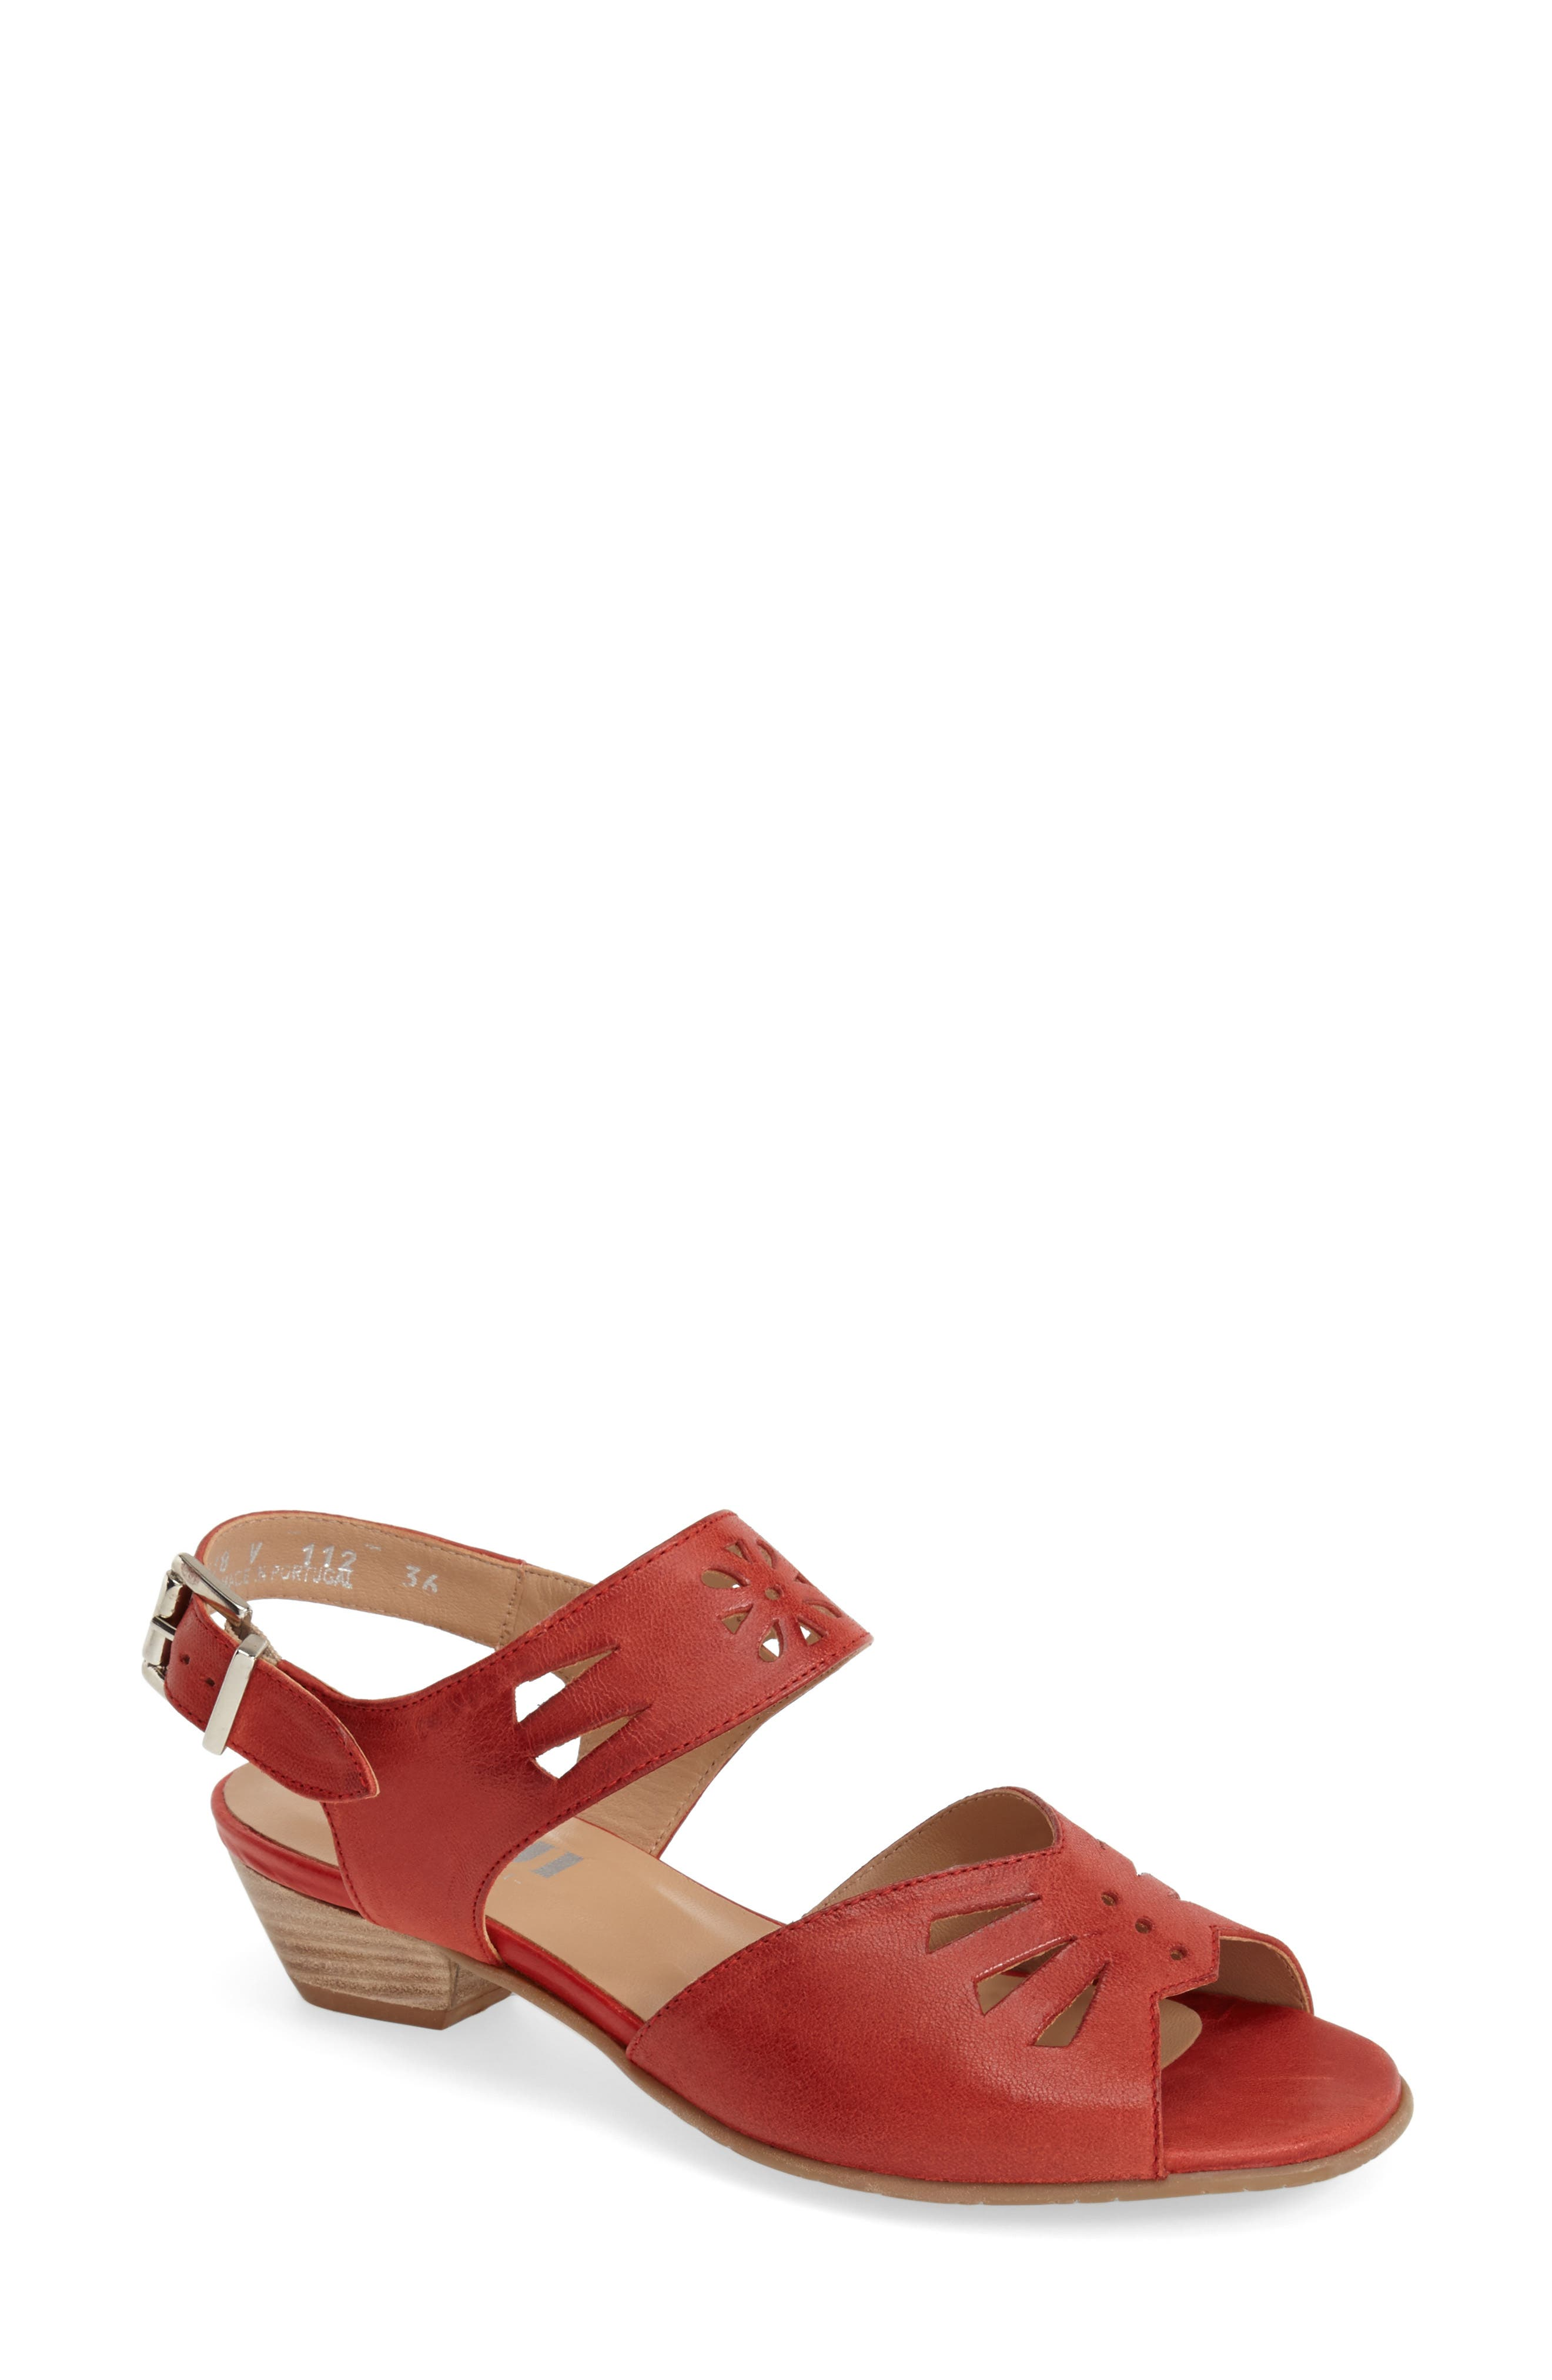 'V112' Perforated Leather Sandal,                             Alternate thumbnail 5, color,                             RED